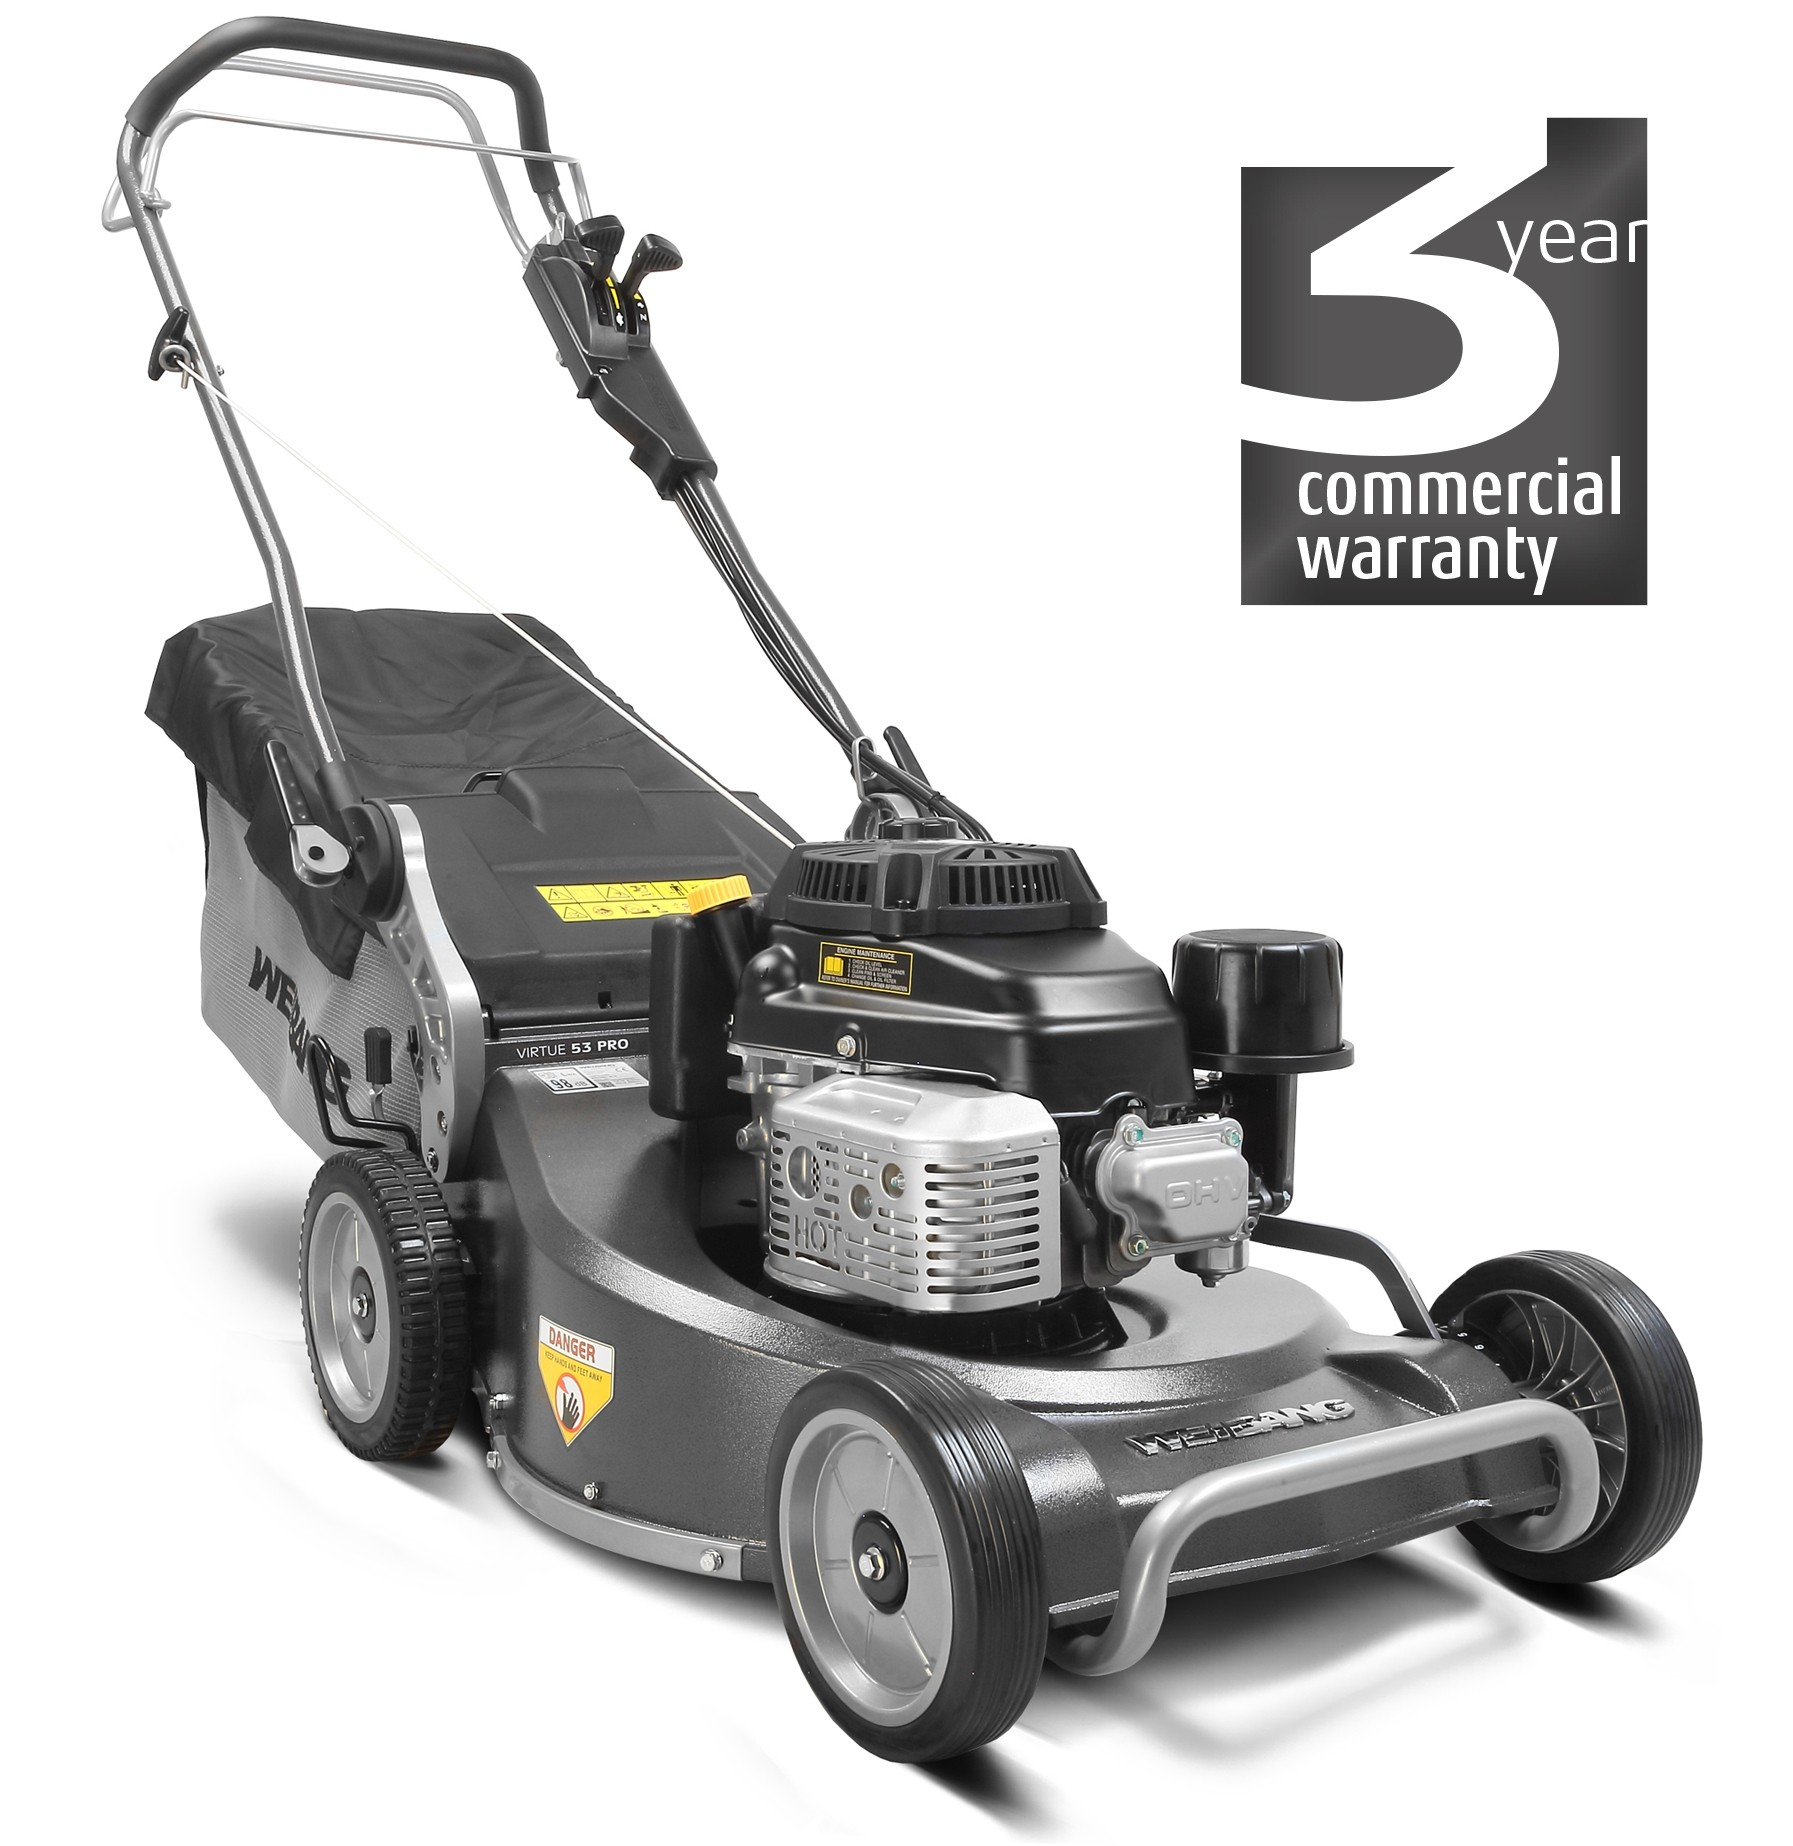 Weibang Virtue 53 PRO Professional Lawn Mower